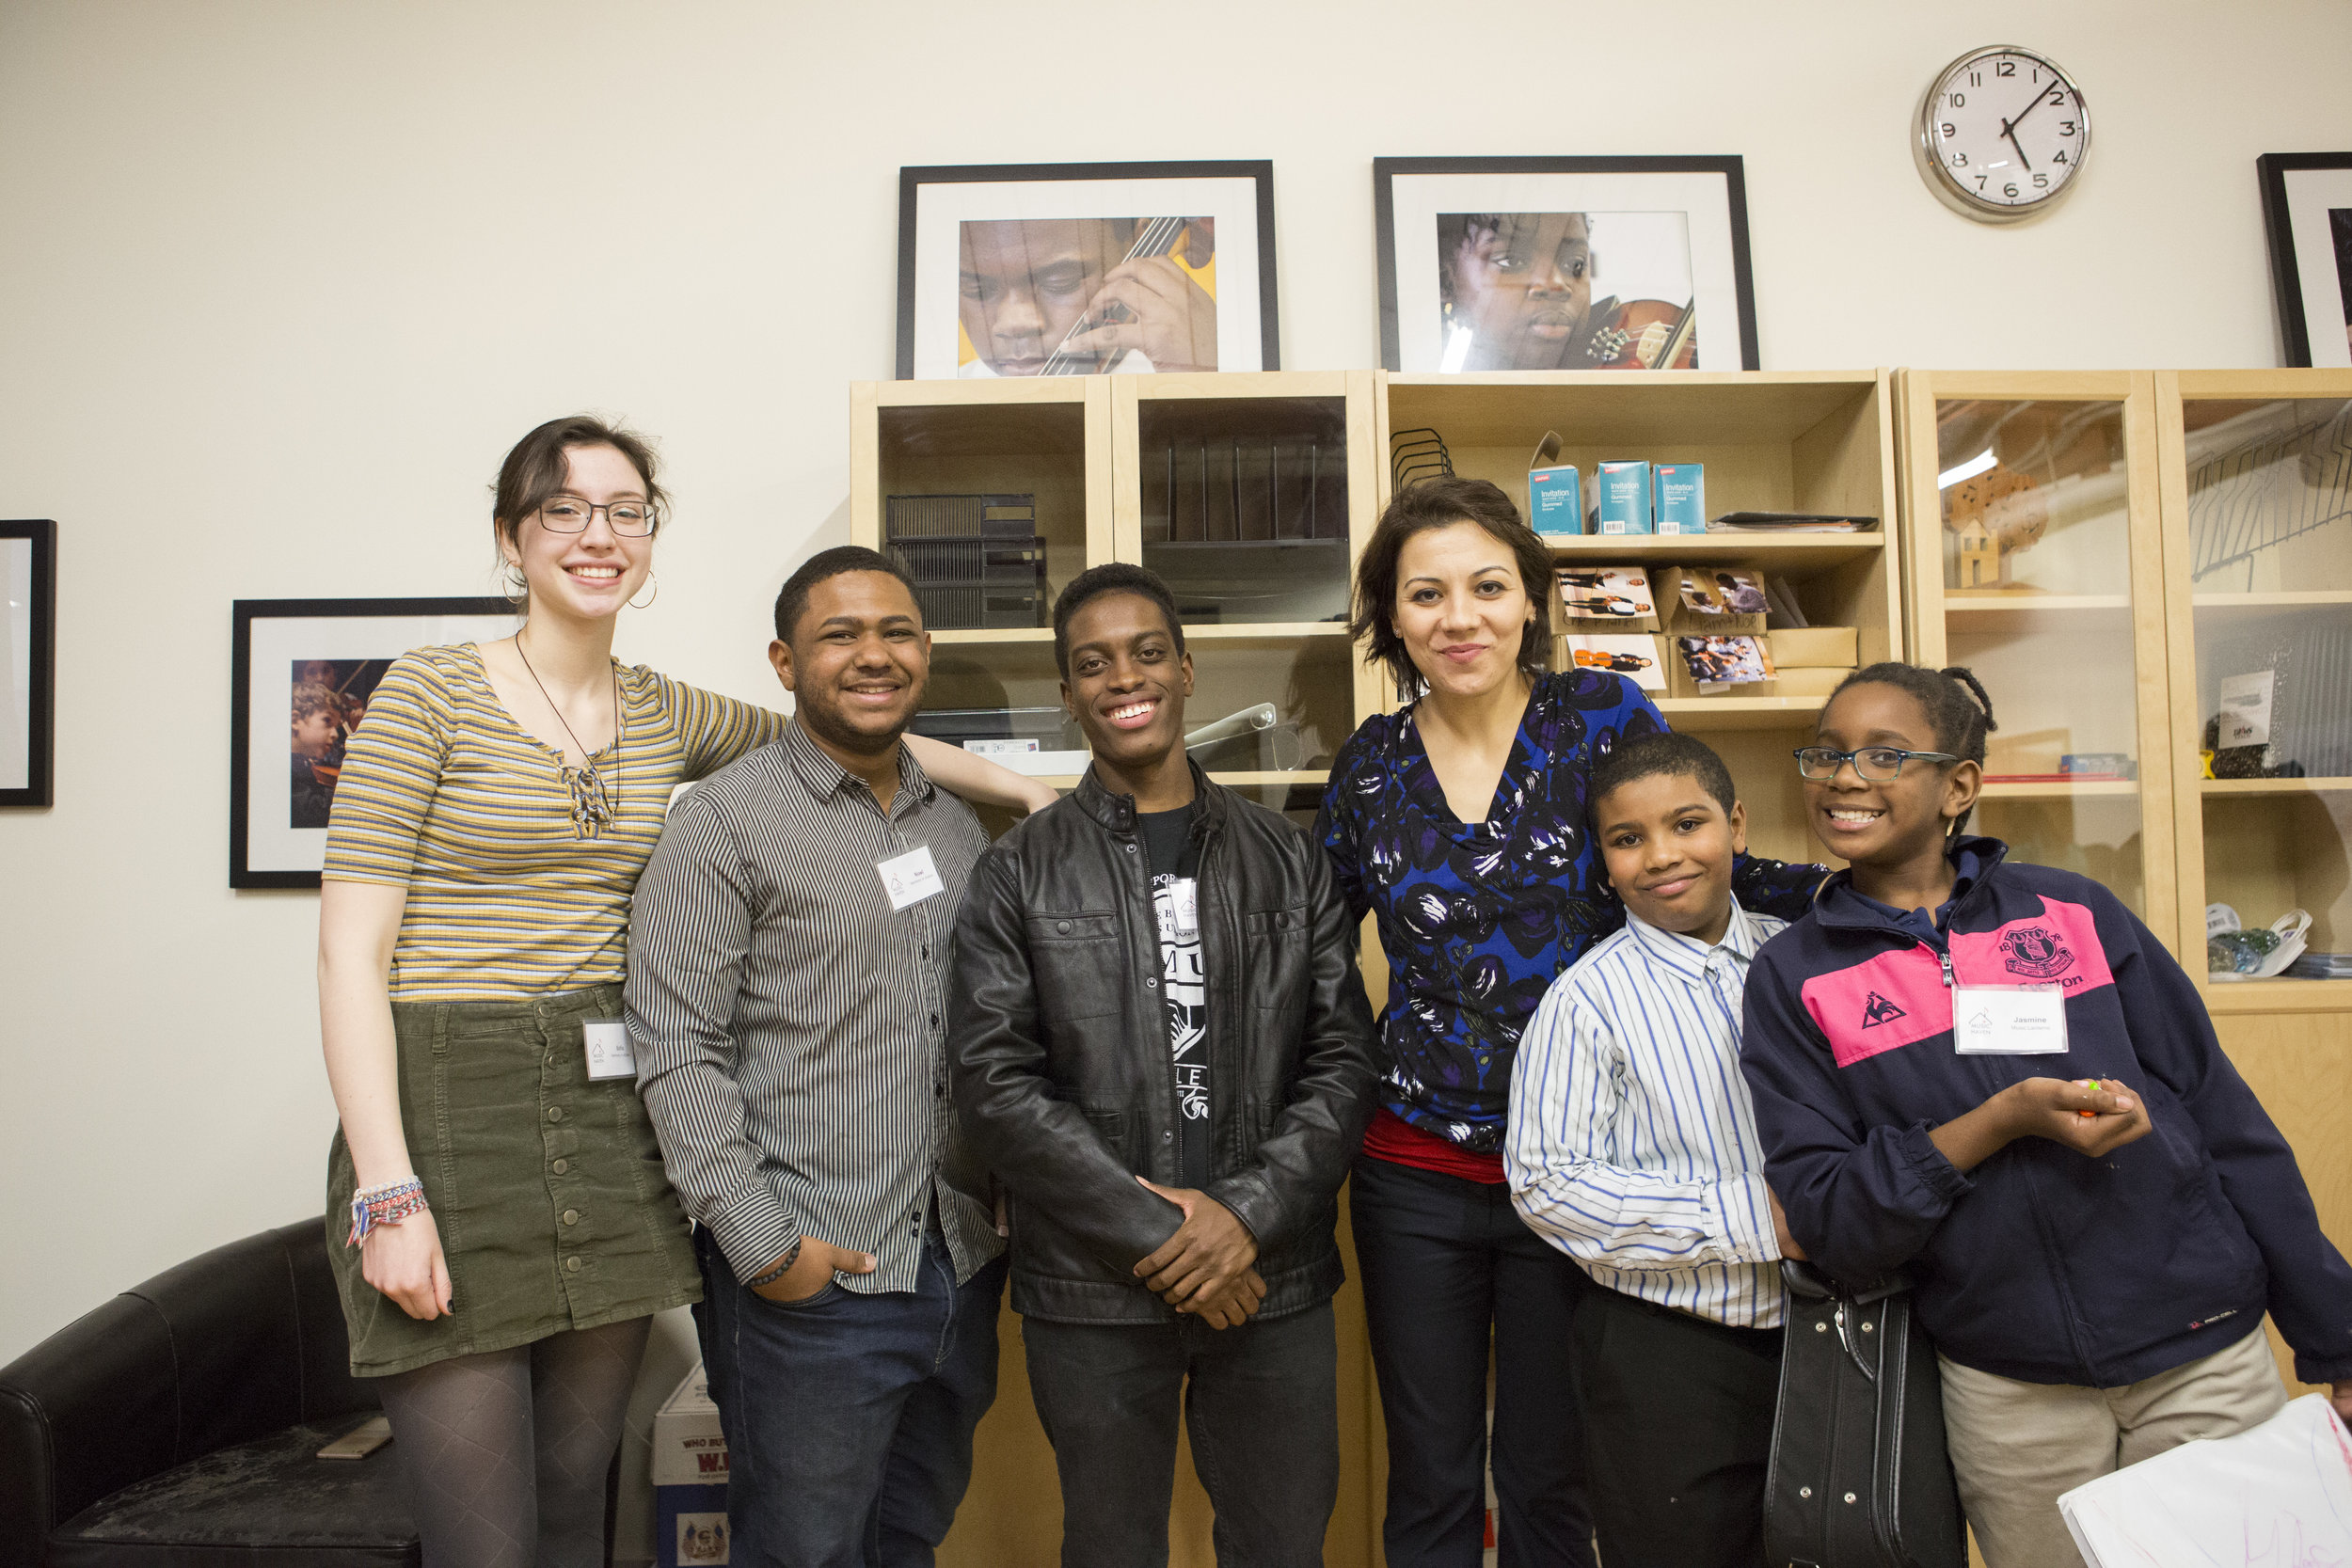 Damani with friends and Ms. Yaira at the MH Ribbon Cutting, January 2018